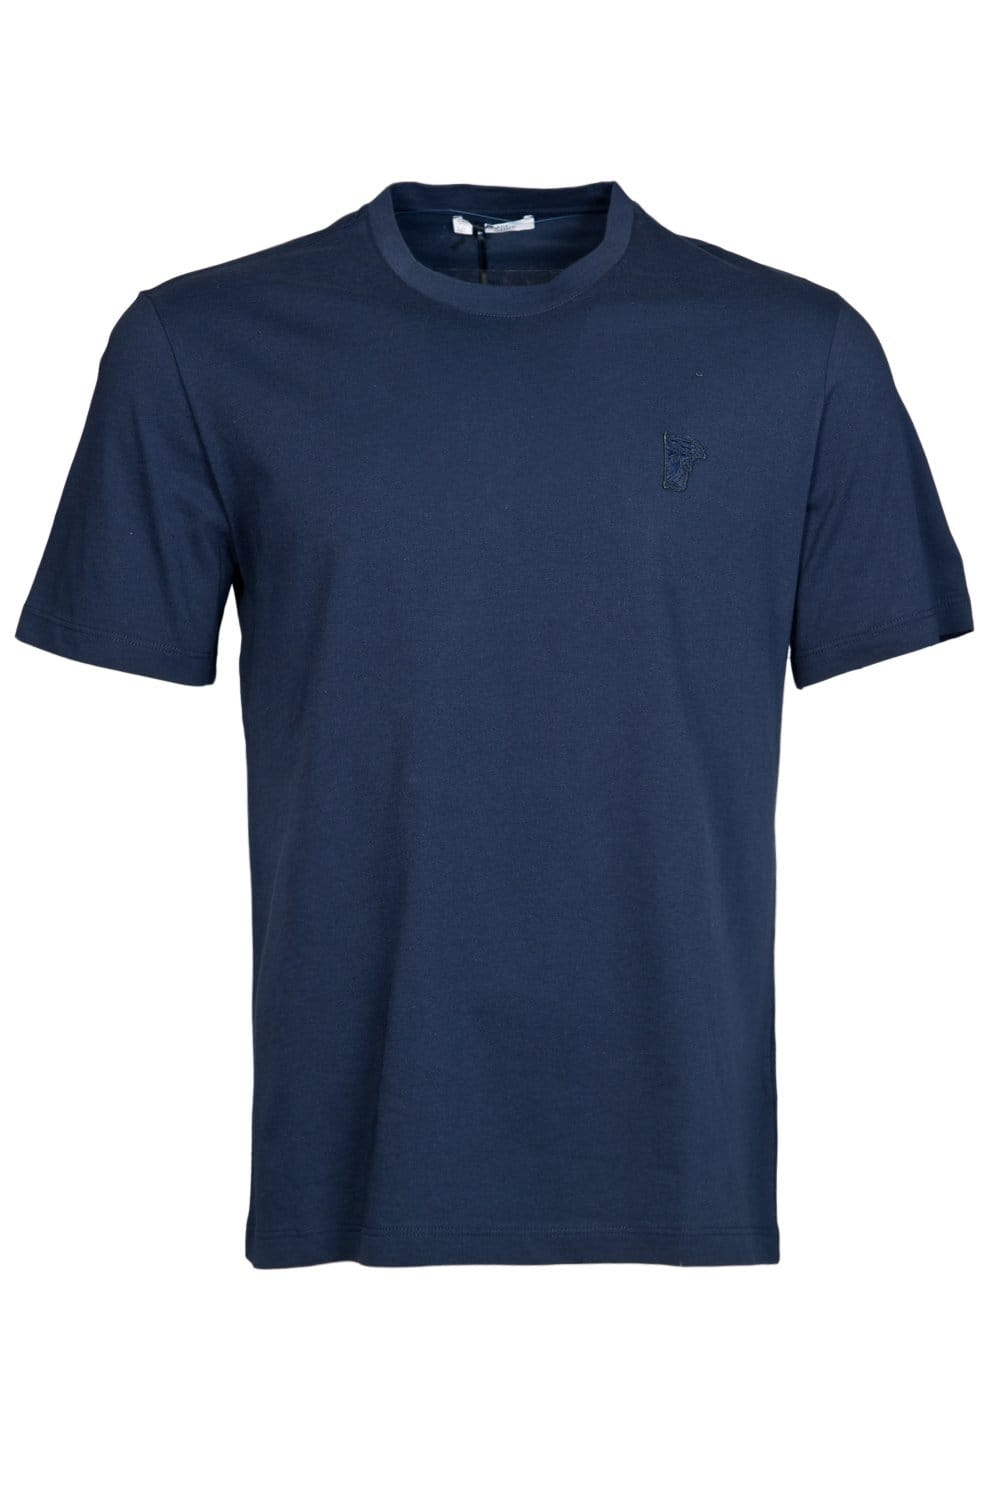 Versace plain regular fit t shirt in navy blue for Blue and white versace shirt